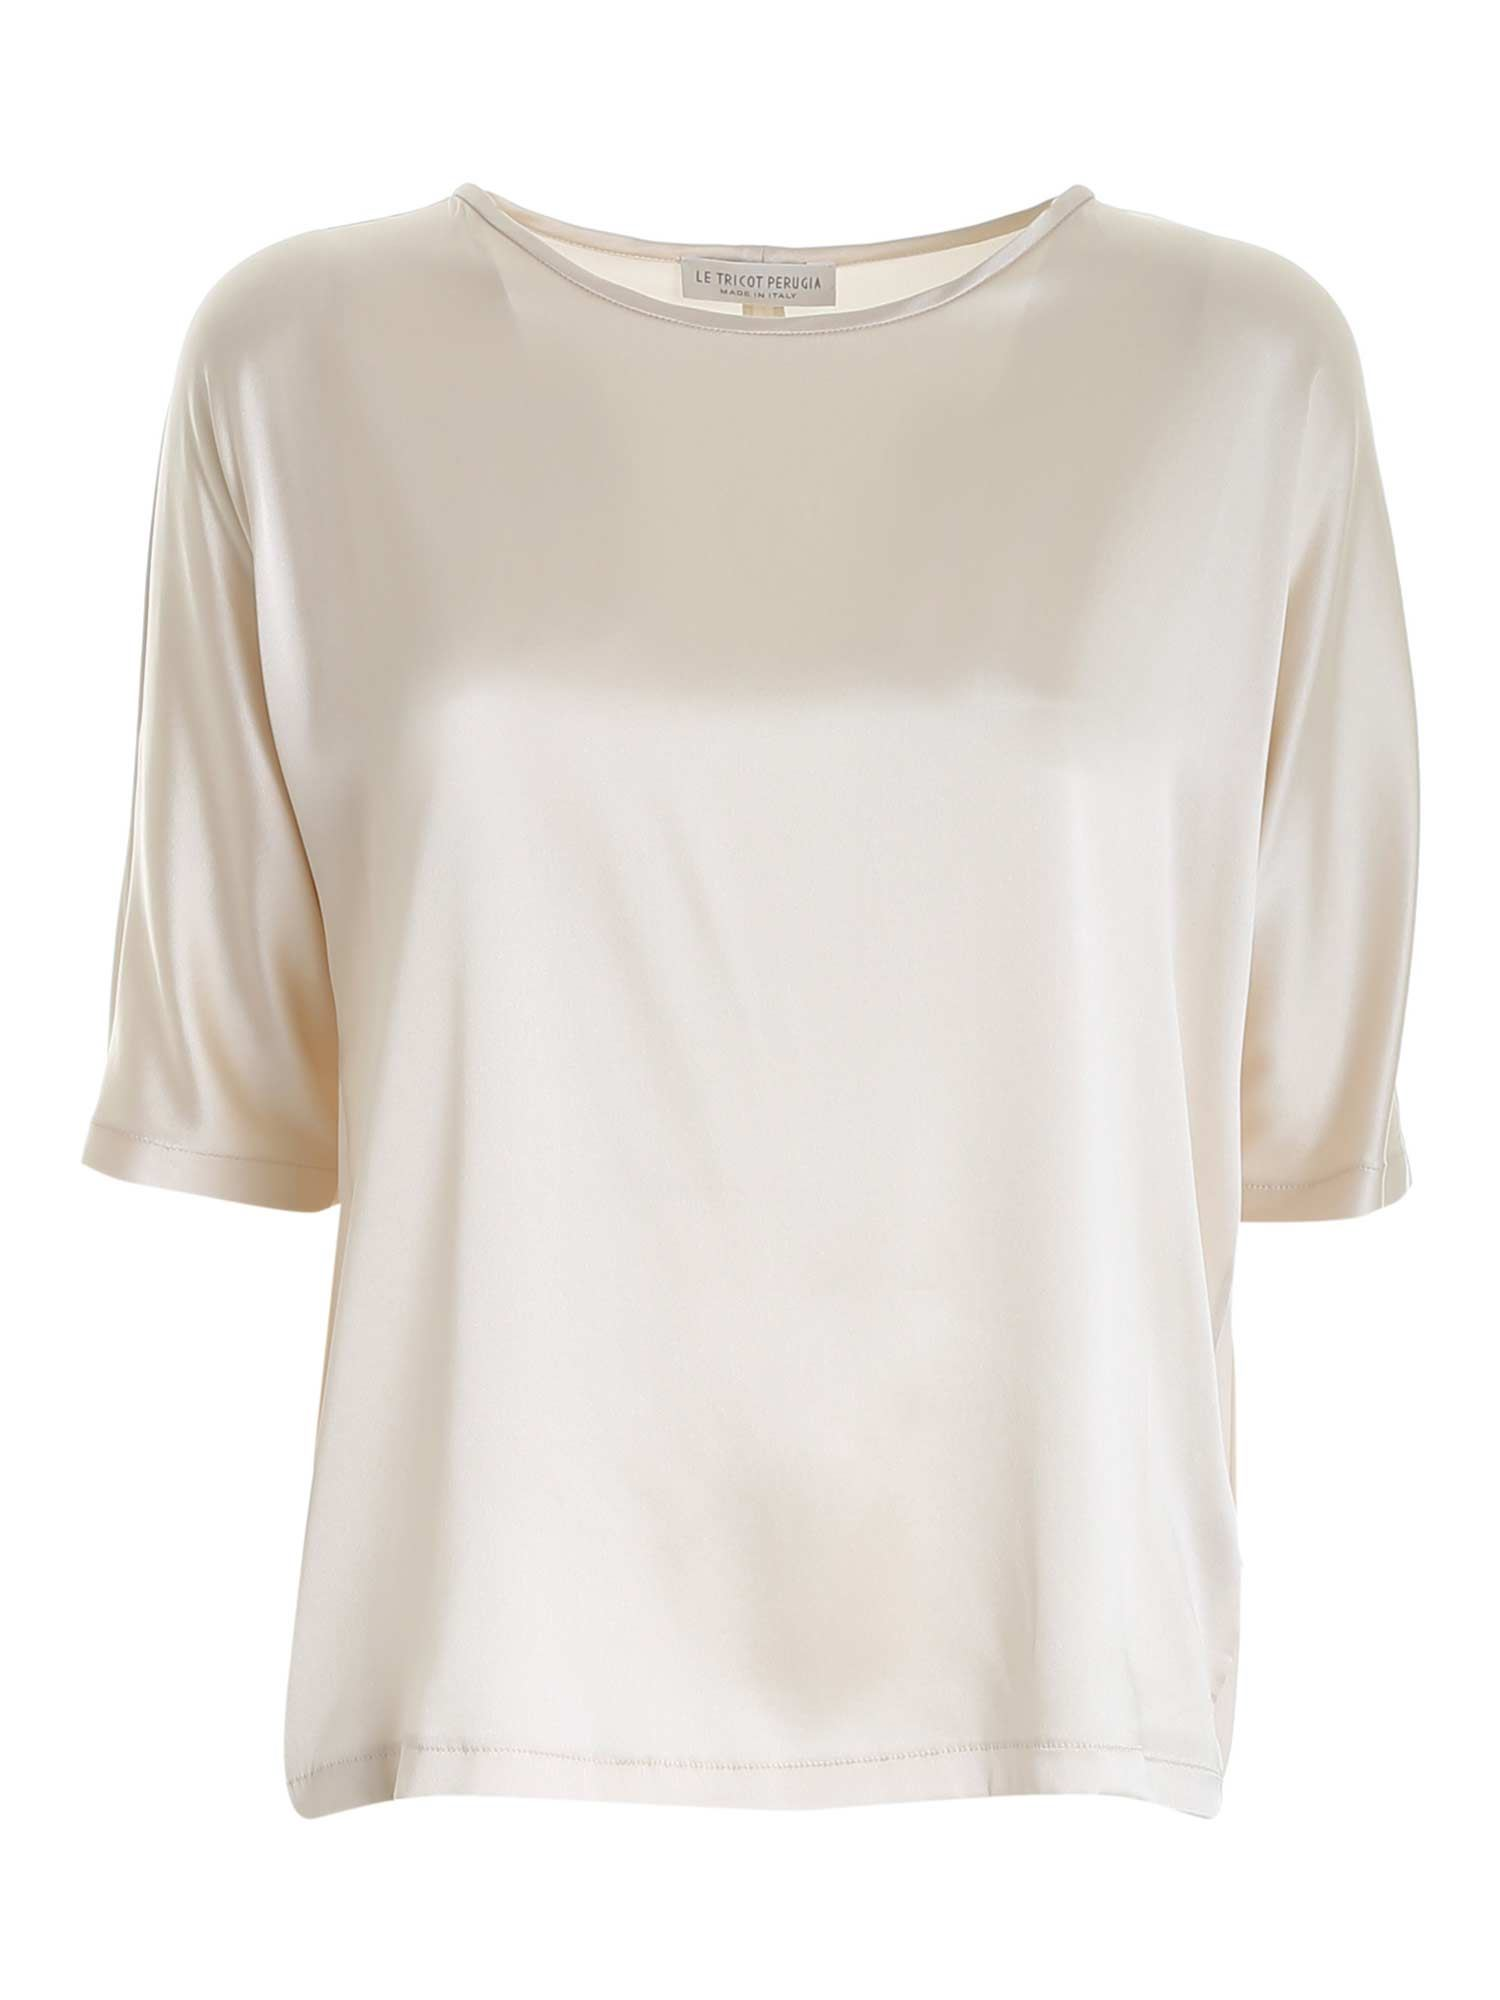 Le Tricot Perugia STRETCH SATIN BLOUSE IN IVORY COLOR